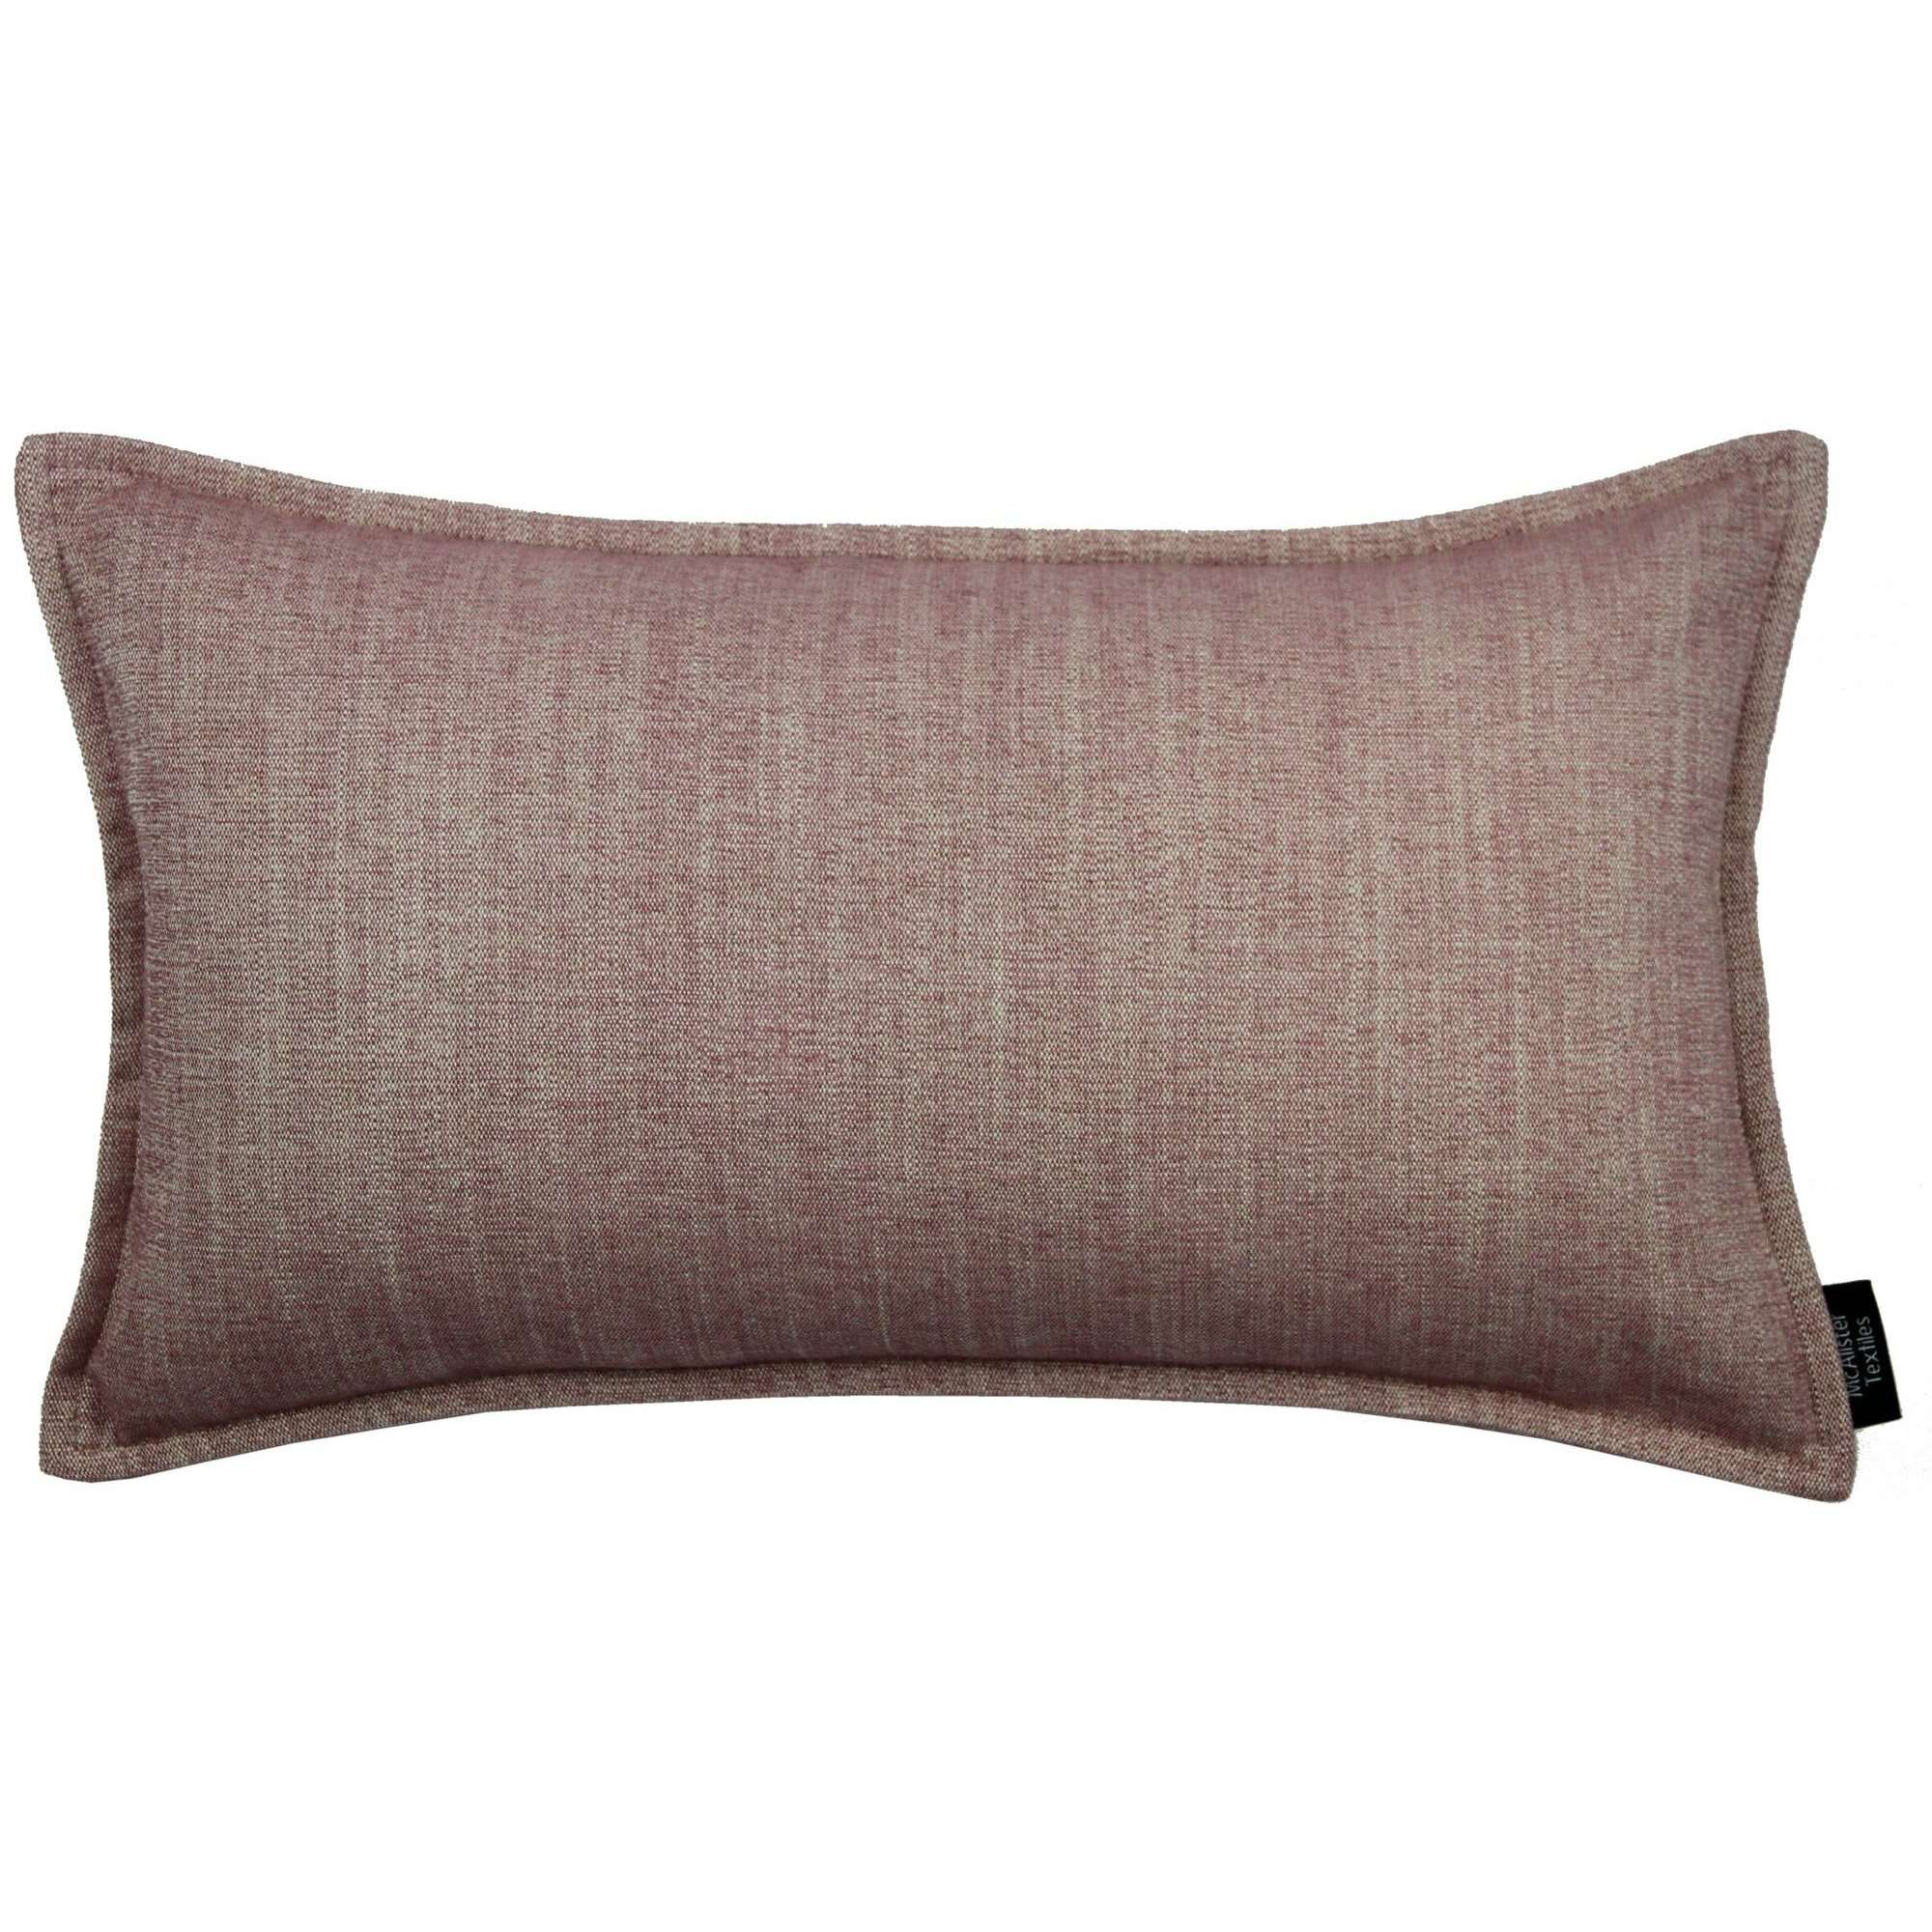 McAlister Textiles Rhumba Blush Pink Cushion Cushions and Covers Cover Only 50cm x 30cm